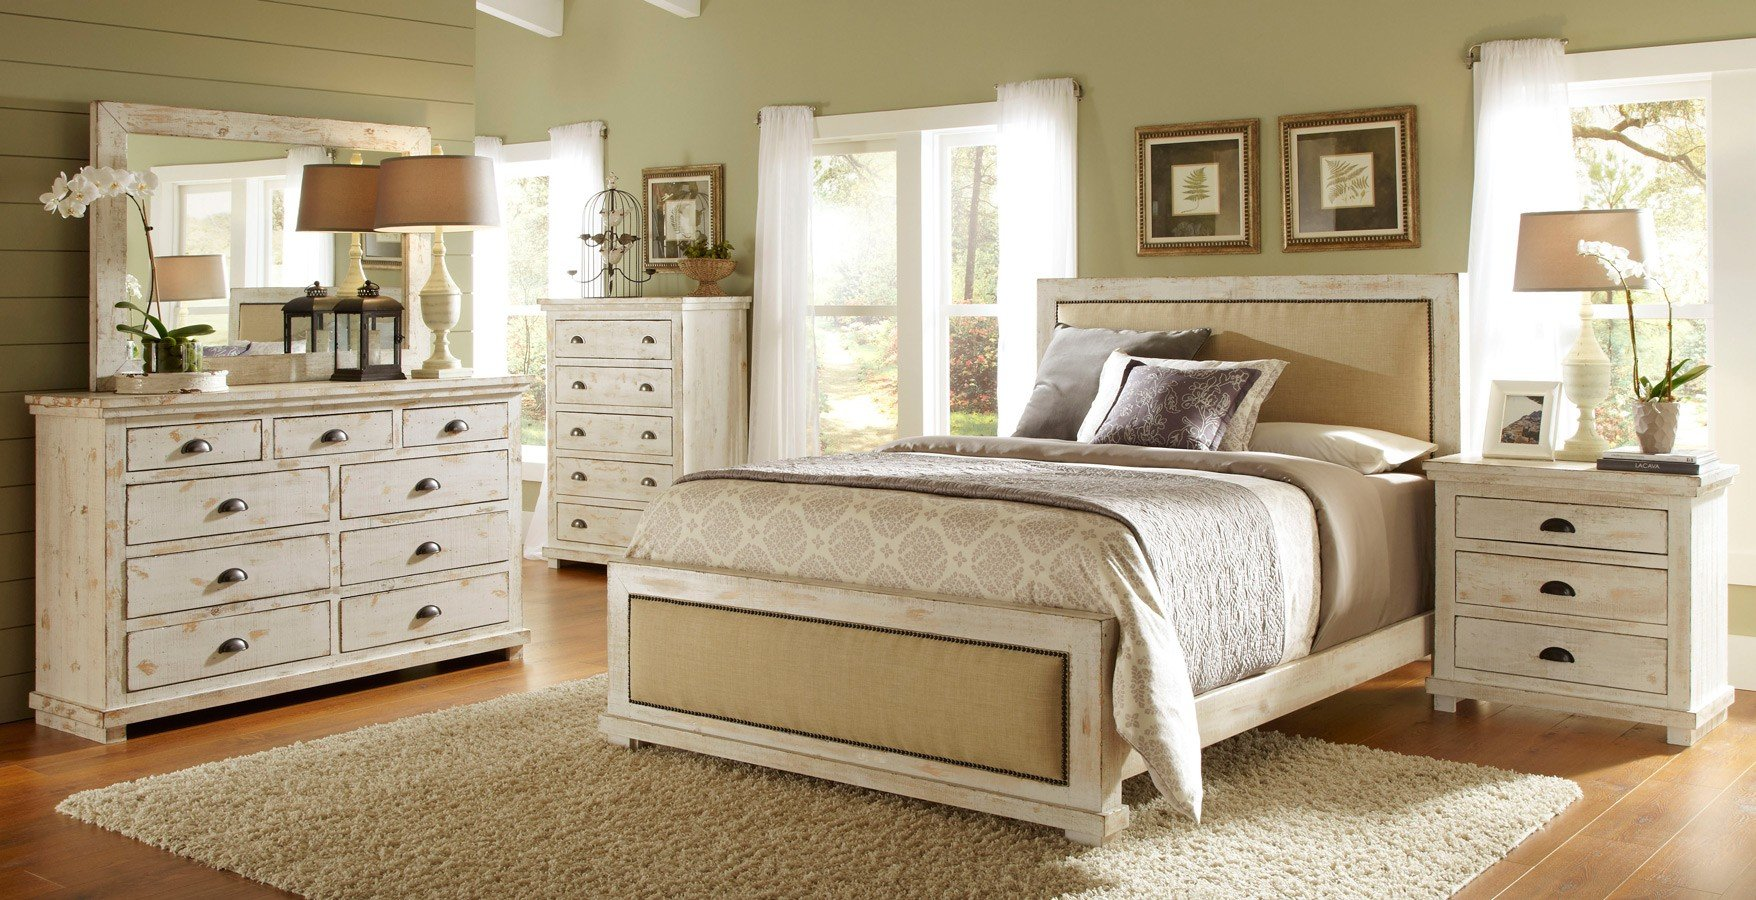 Great Upholstered Bedroom Set Minimalist